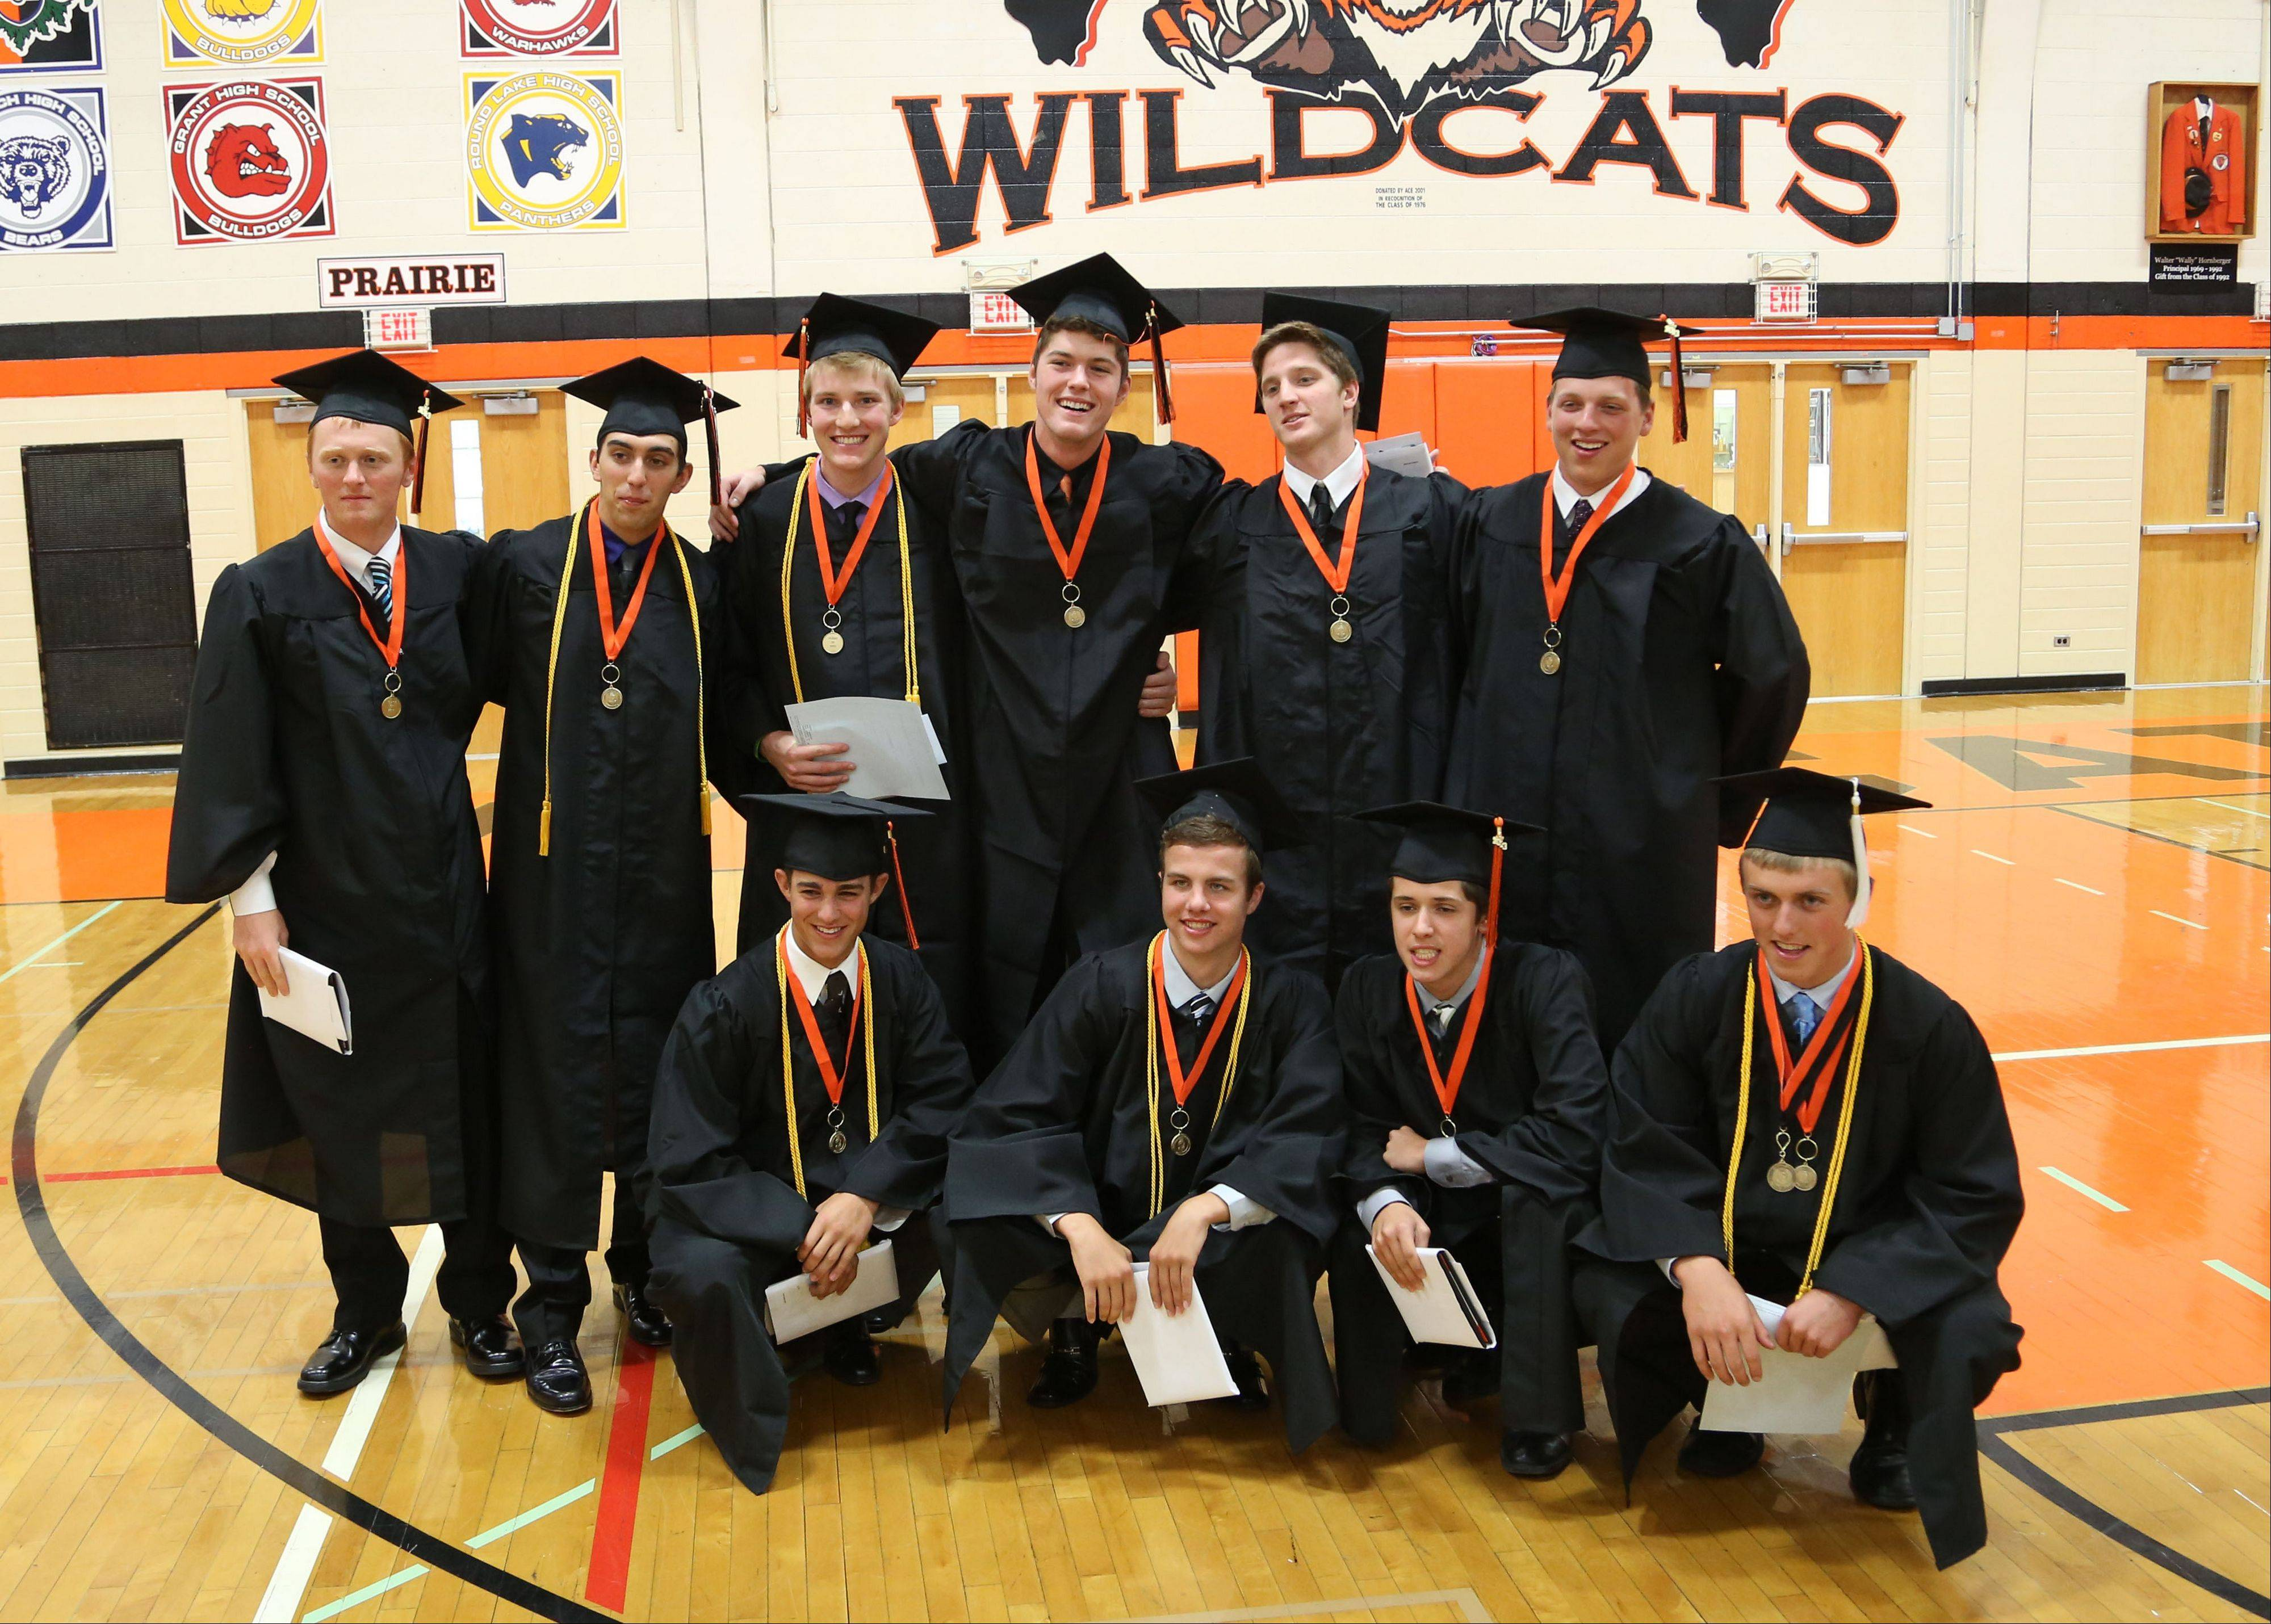 Libertyville High School seniors on the baseball team participate in a special graduation ceremony in the gymnasium Thursday. The school's graduation ceremony at Sears Centre Arena in Hoffman Estates tonight conflicts with the team's state semifinal game against St. Charles East High School at Silver Cross Field in Joliet.